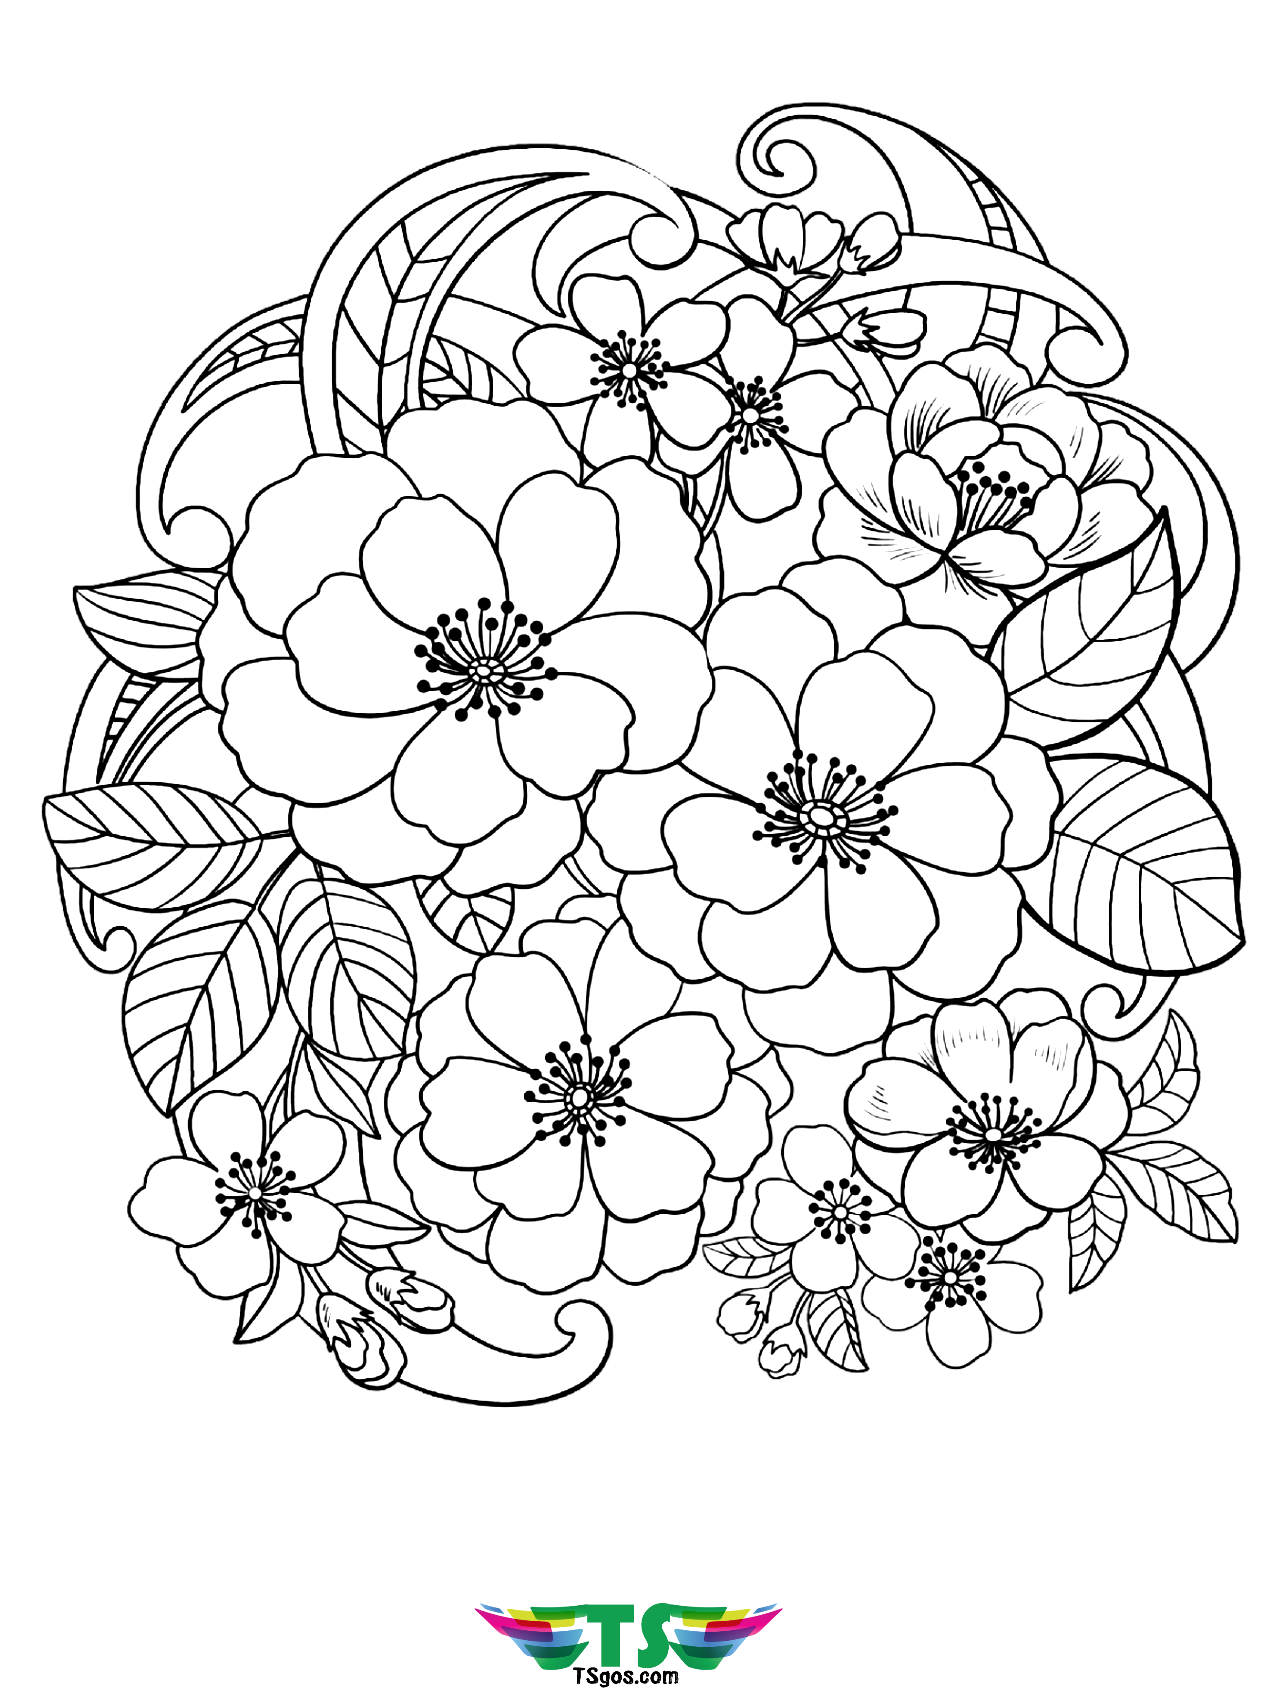 coloring pictures of a flower free printable beautiful flowers coloring page for kids a pictures flower coloring of